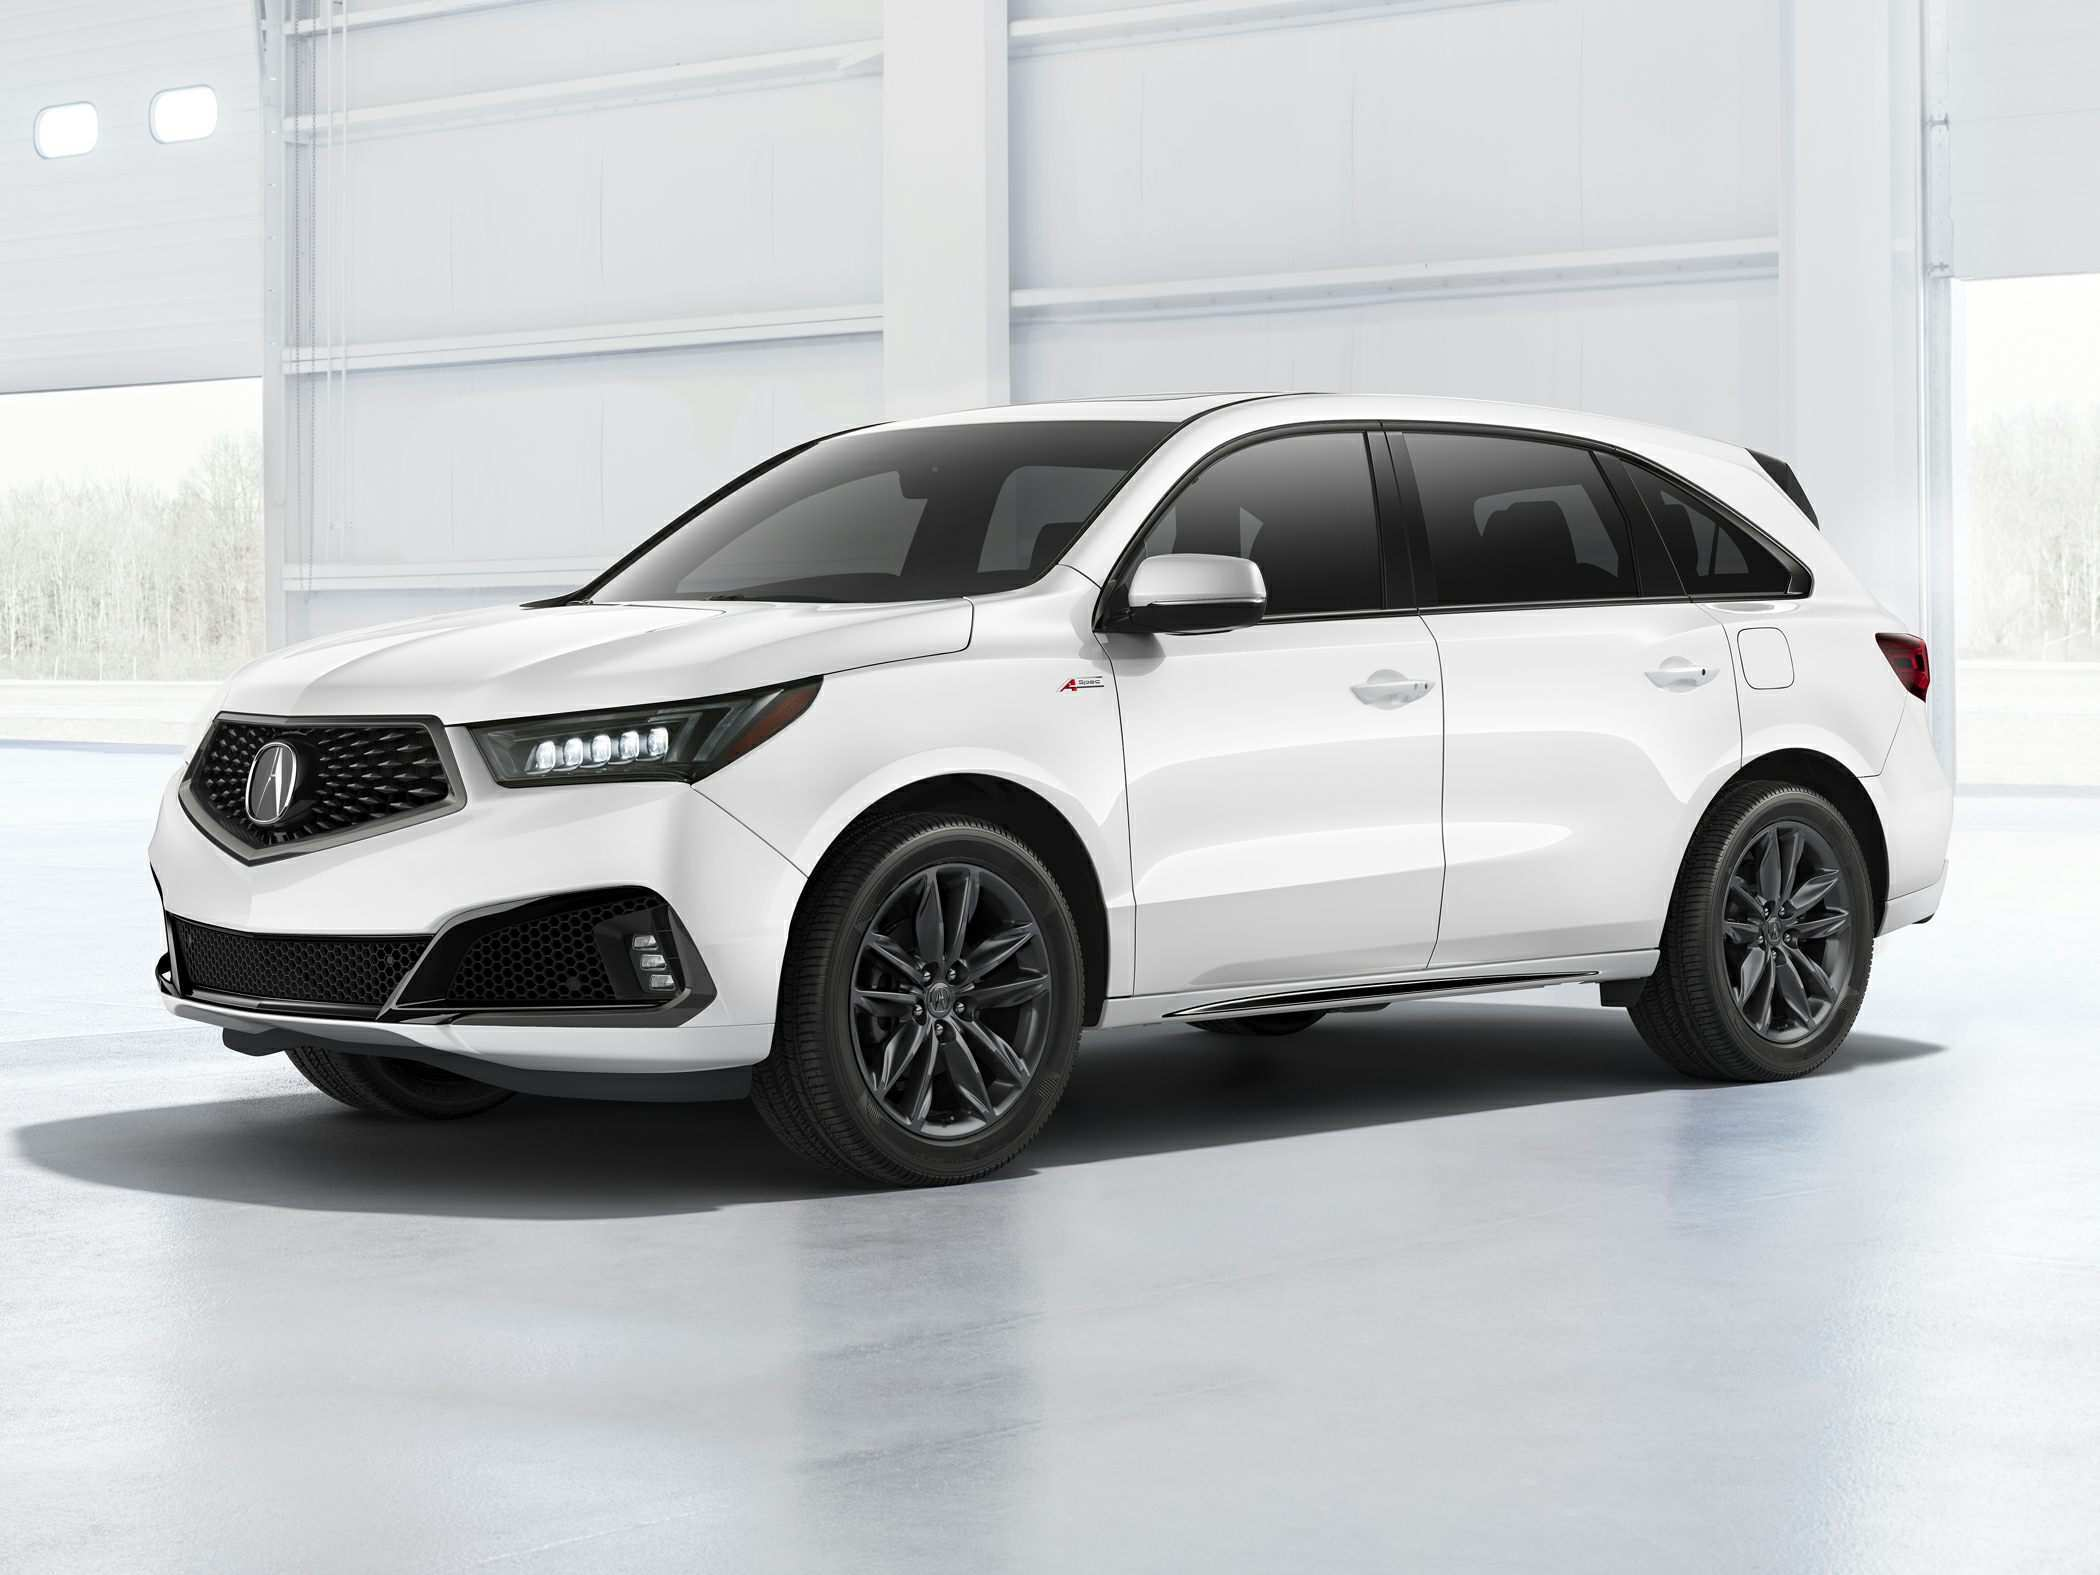 76 All New 2020 Acura Lineup Engine